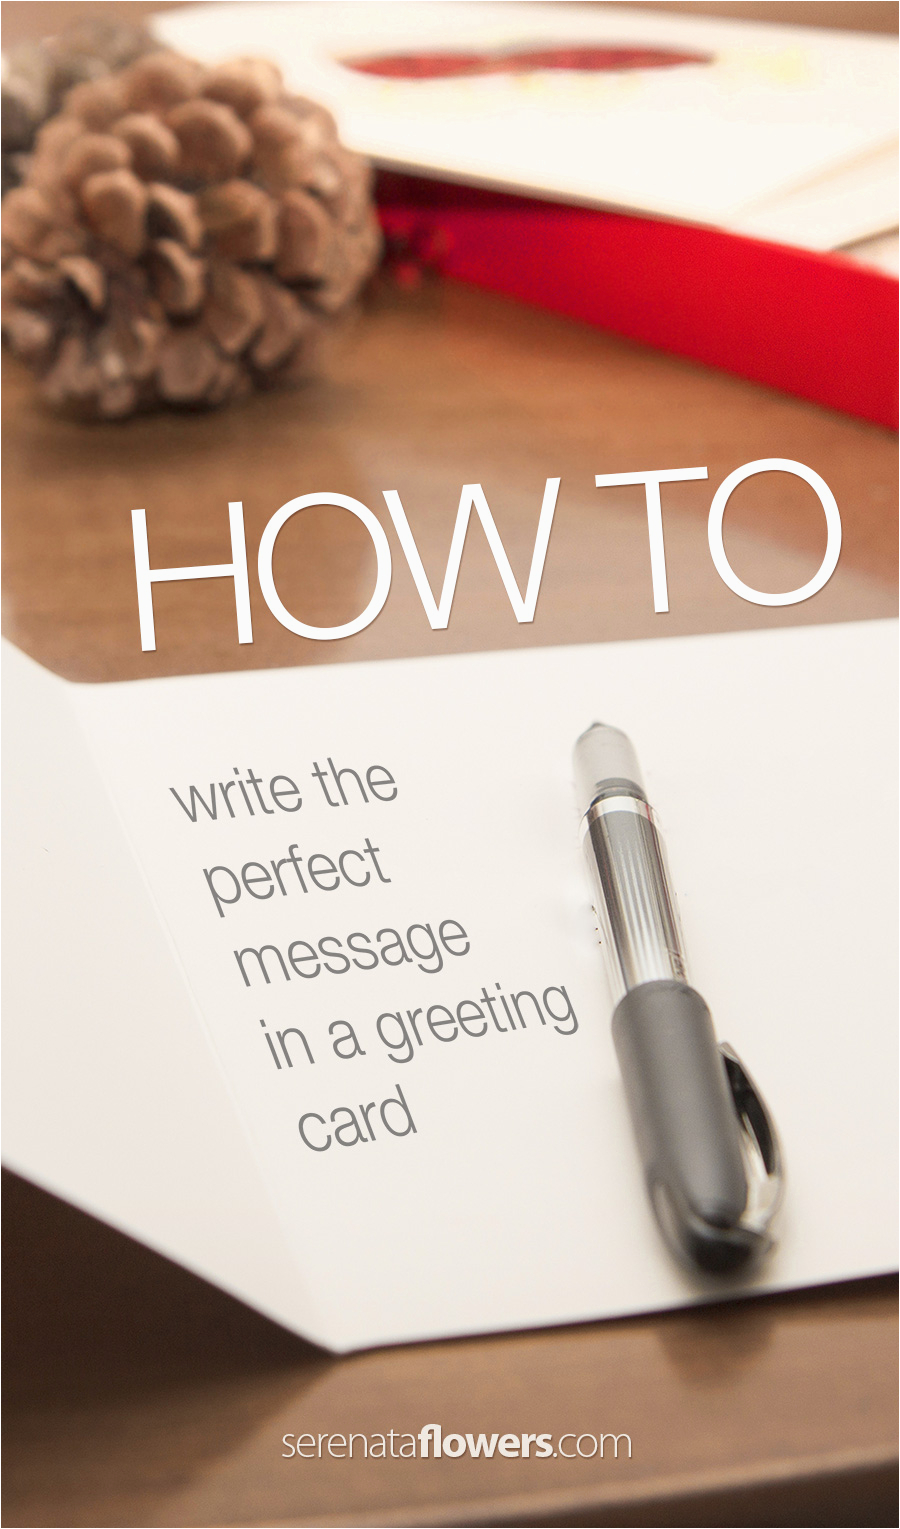 tips for writing a perfect message in greeting card